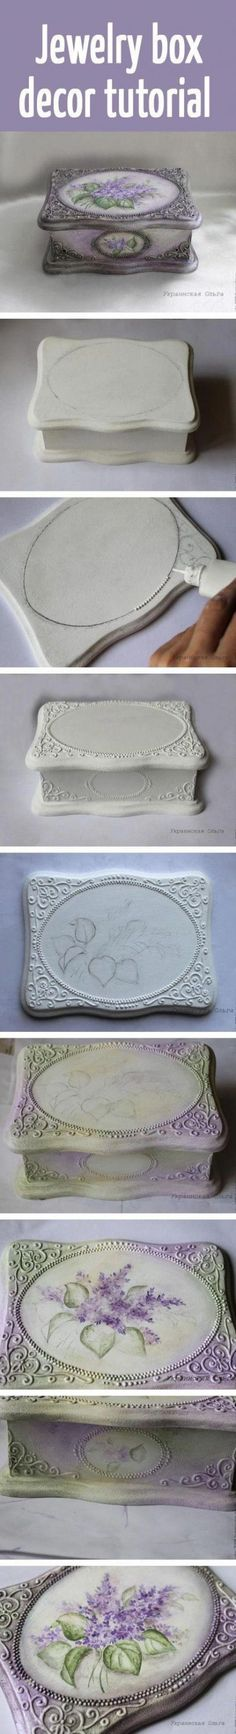 DIY Jewelry Box Ideas # Diy (Schmuckschatulle) # Ideas # Jewelry Box - Diet Plan - Make Up Brush Cleaner - DIY Jewelry Box - Hair Color Hair Styles - Hygge Home Inspiration Jewellery Boxes, Jewellery Storage, Jewelry Hooks, Hand Jewelry, Jewelry Holder, Unique Jewelry, Jewelry Box Plans, Decoupage Box, Vintage Diy